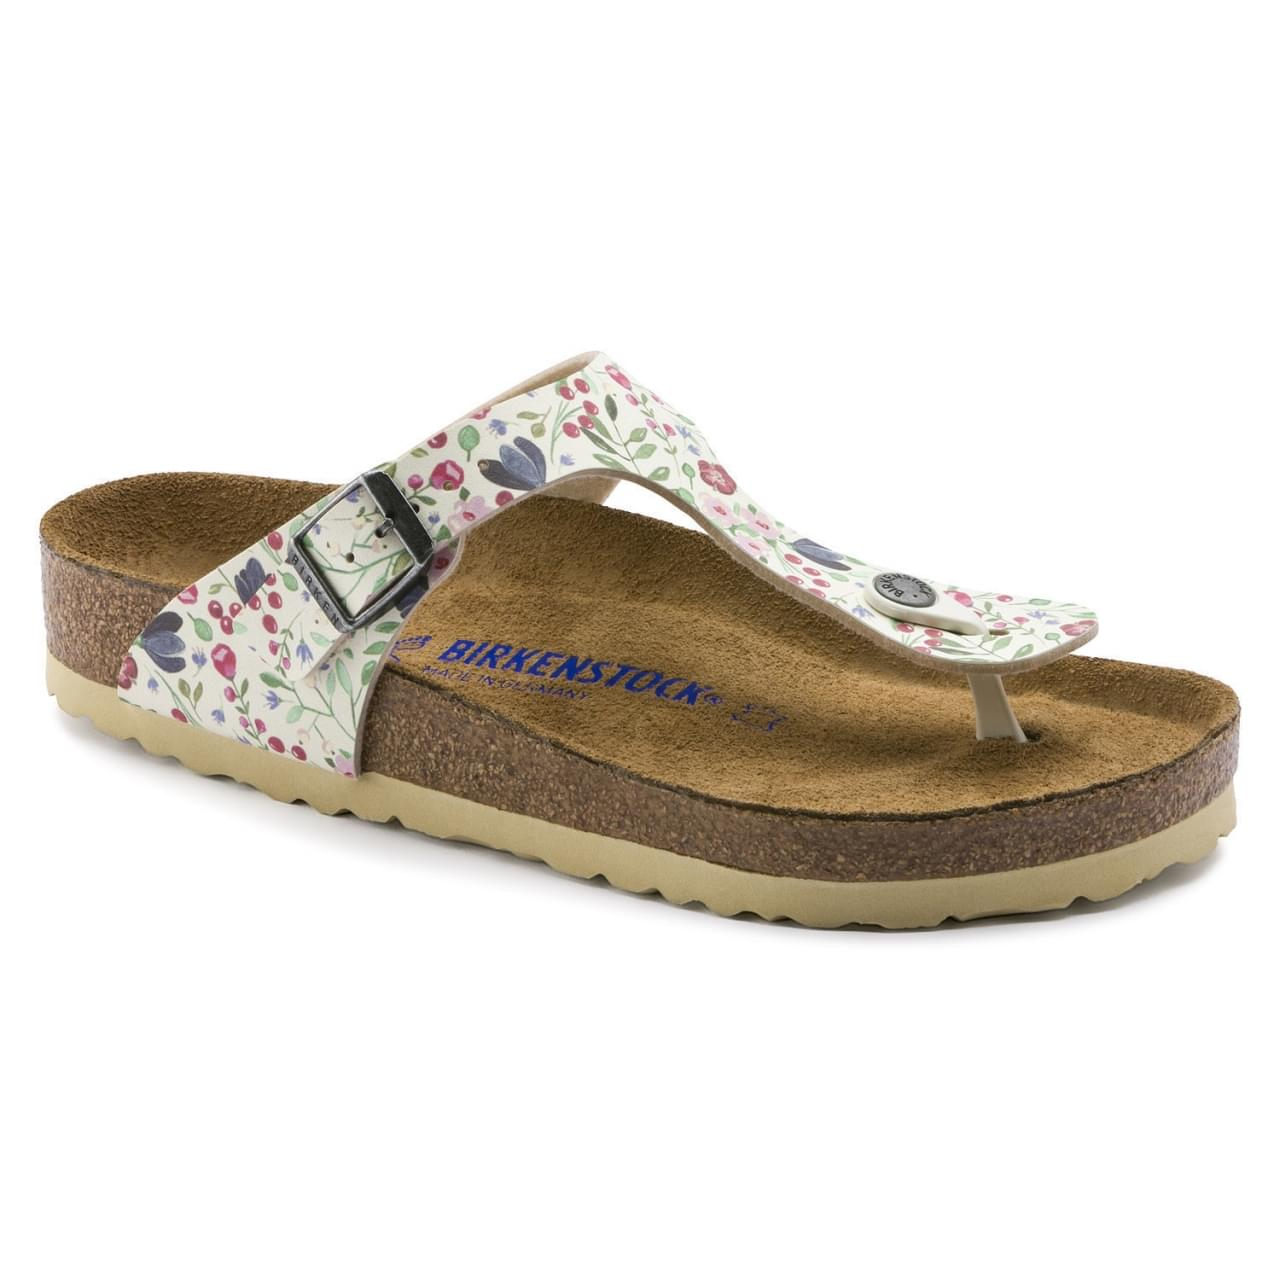 Birkenstock Gizeh SFB Meadow Flowers Slipper Dames